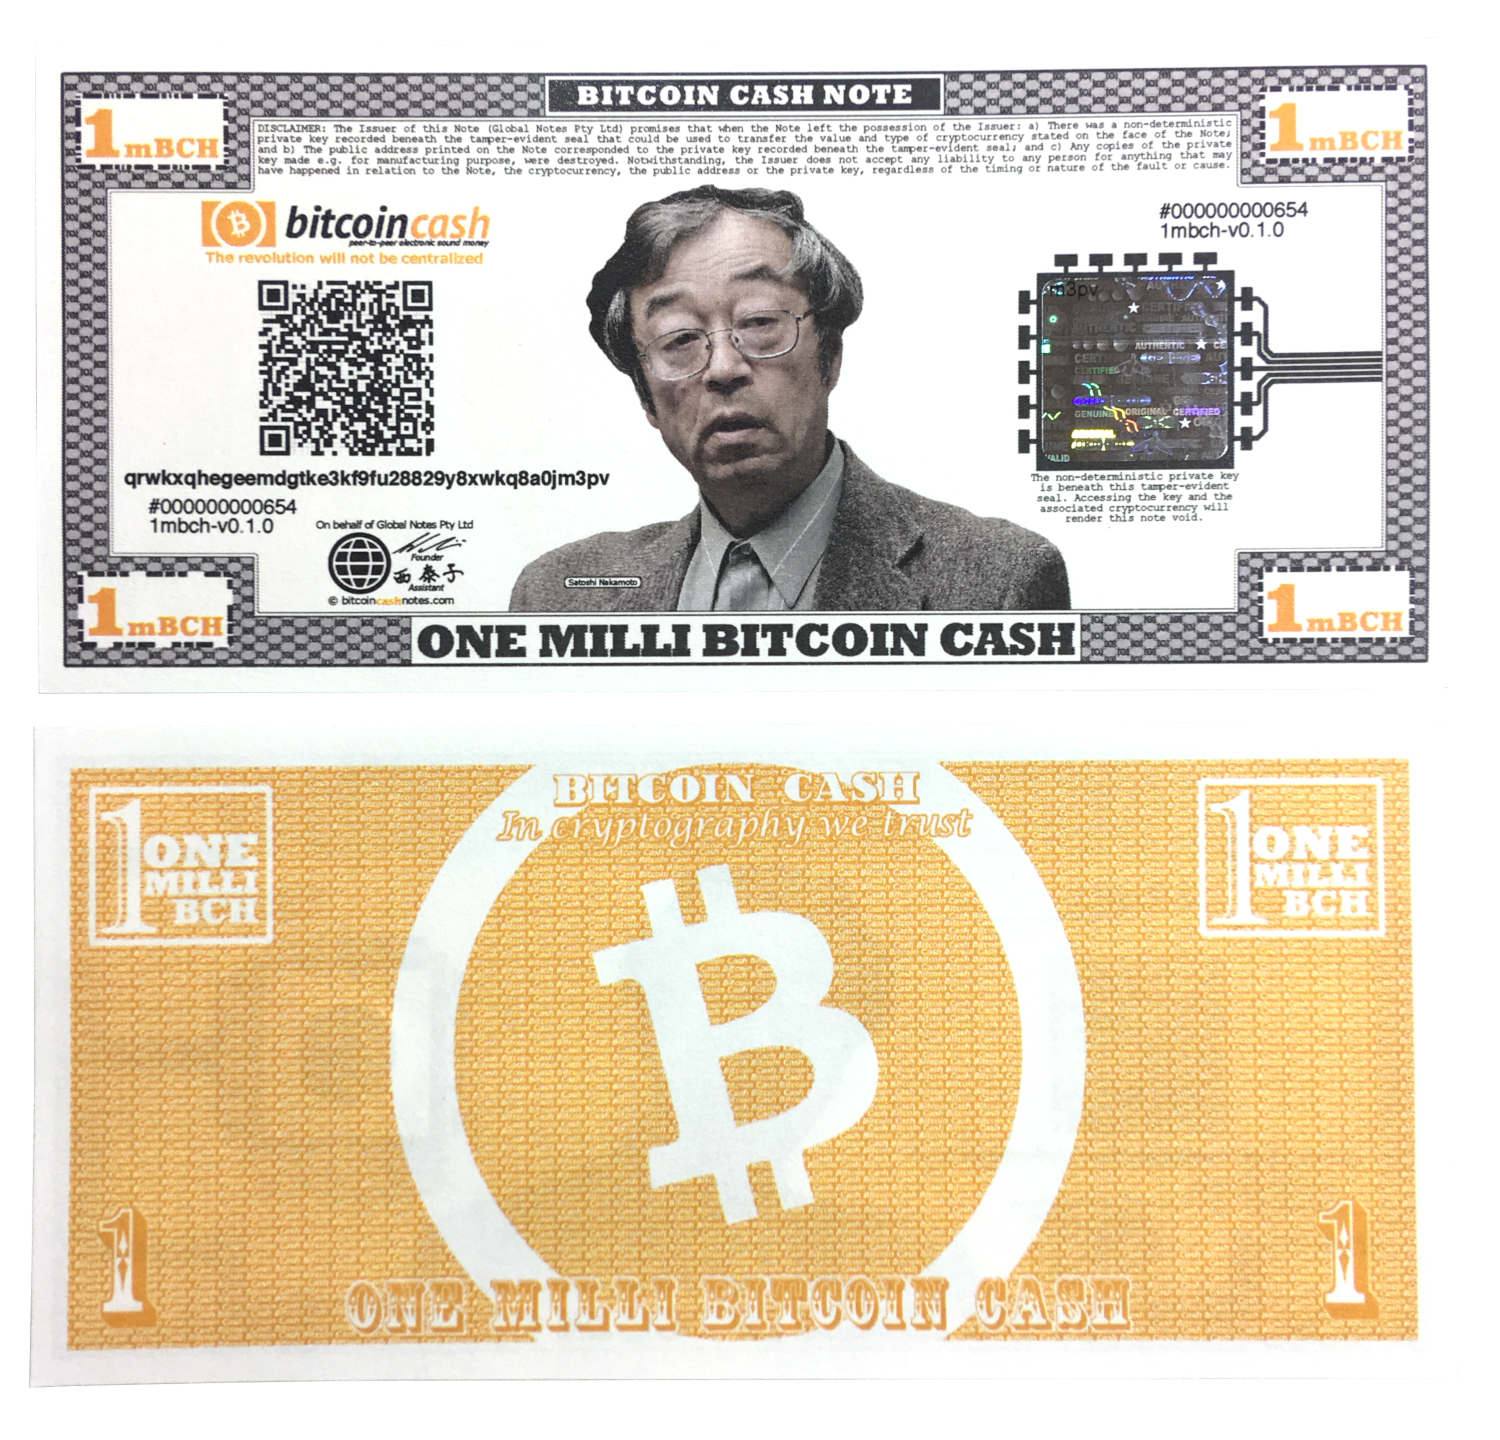 Startup Launches Loaded Bitcoin Cash Notes to Spread BCH Adoption